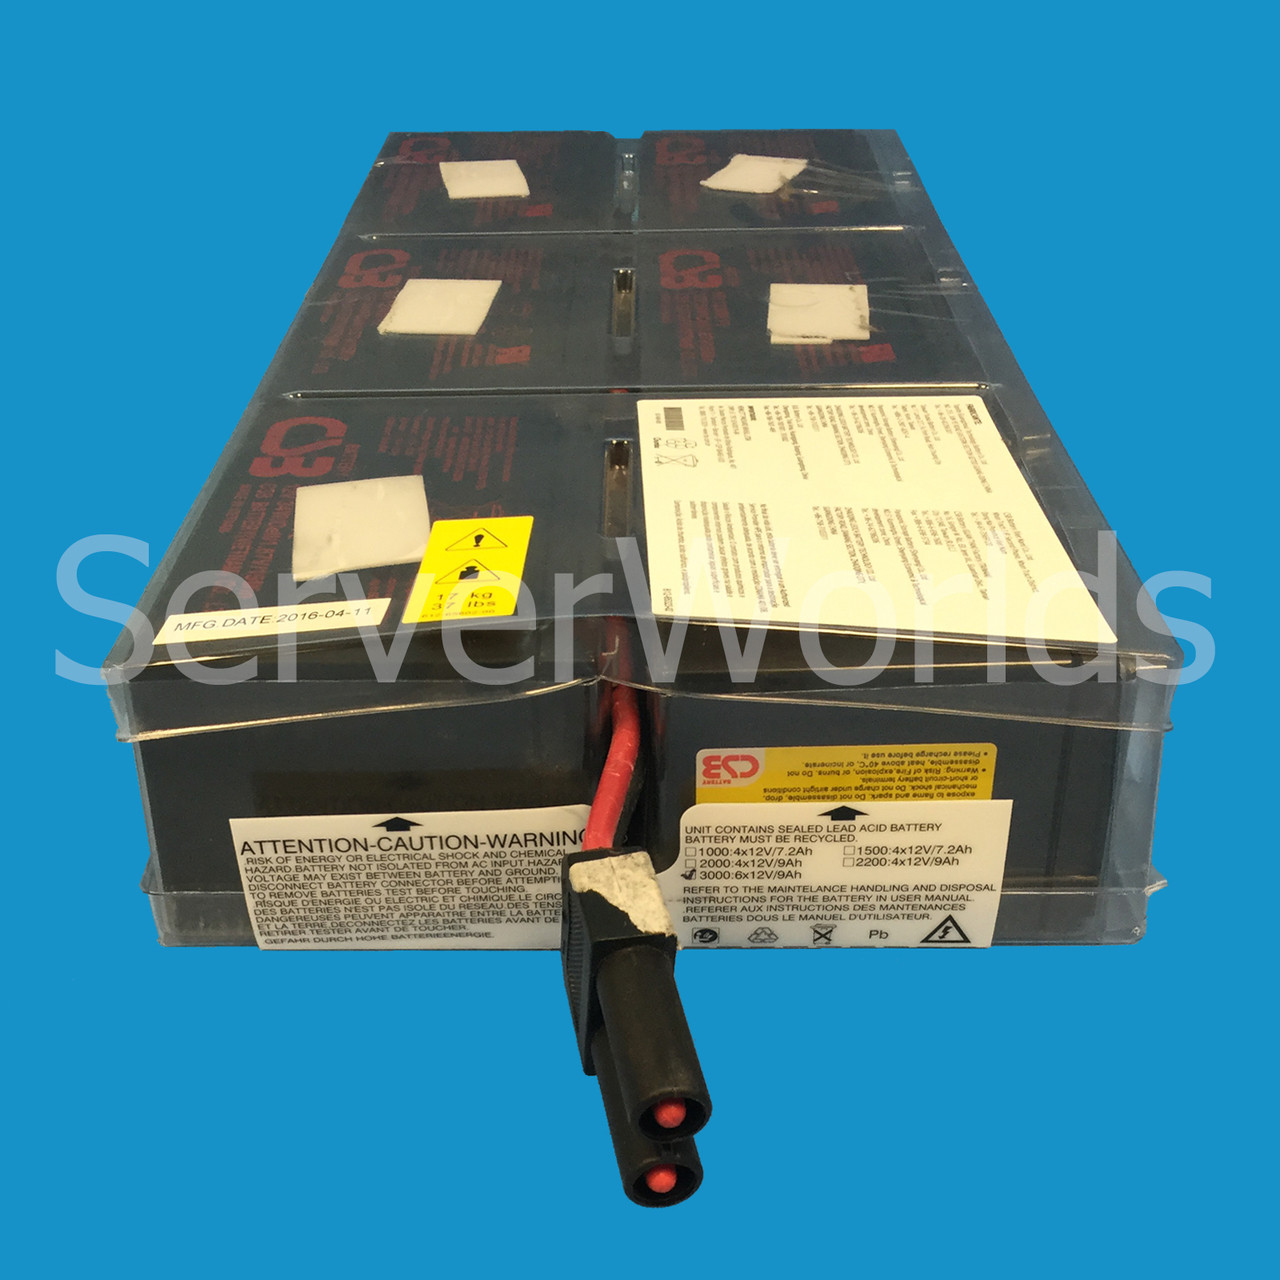 HP 796777-001 | Battery kit UPS 3000 new cells - Serverworlds